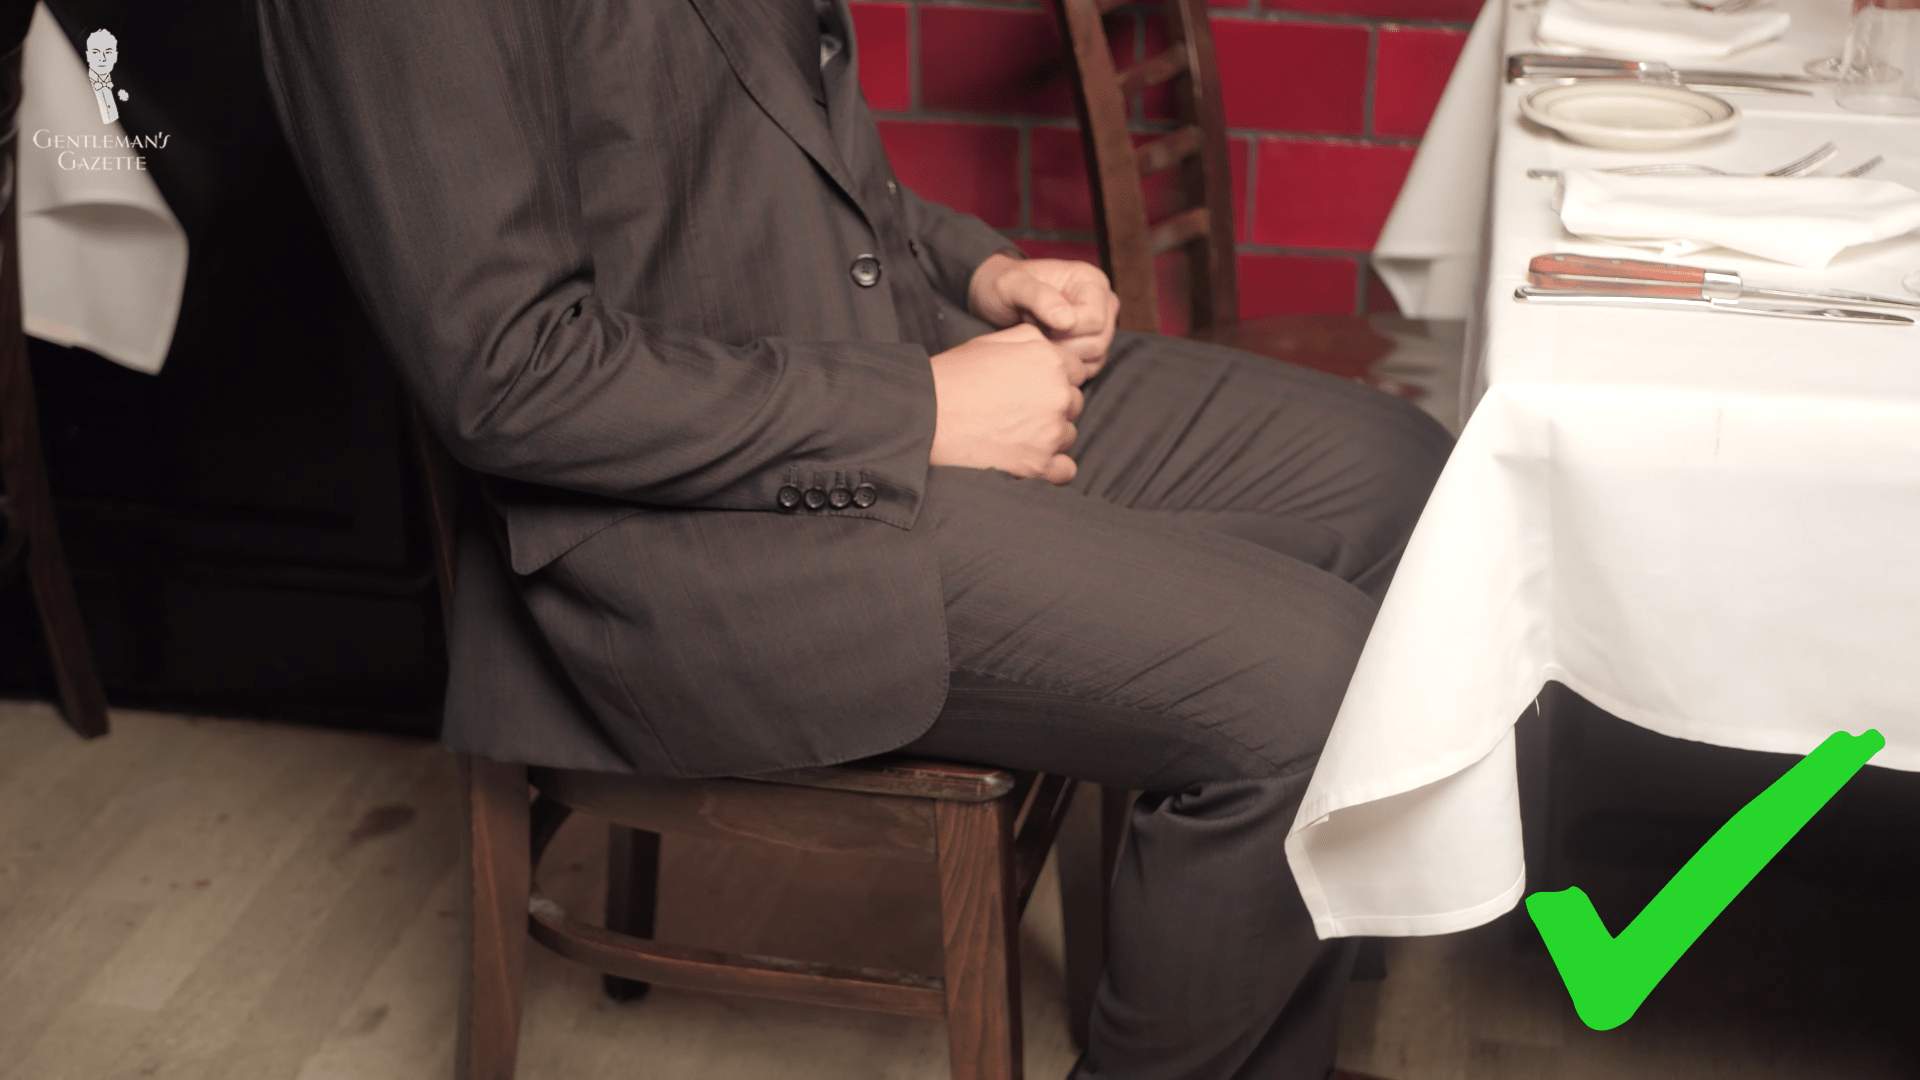 How to properly sit at a restaurant